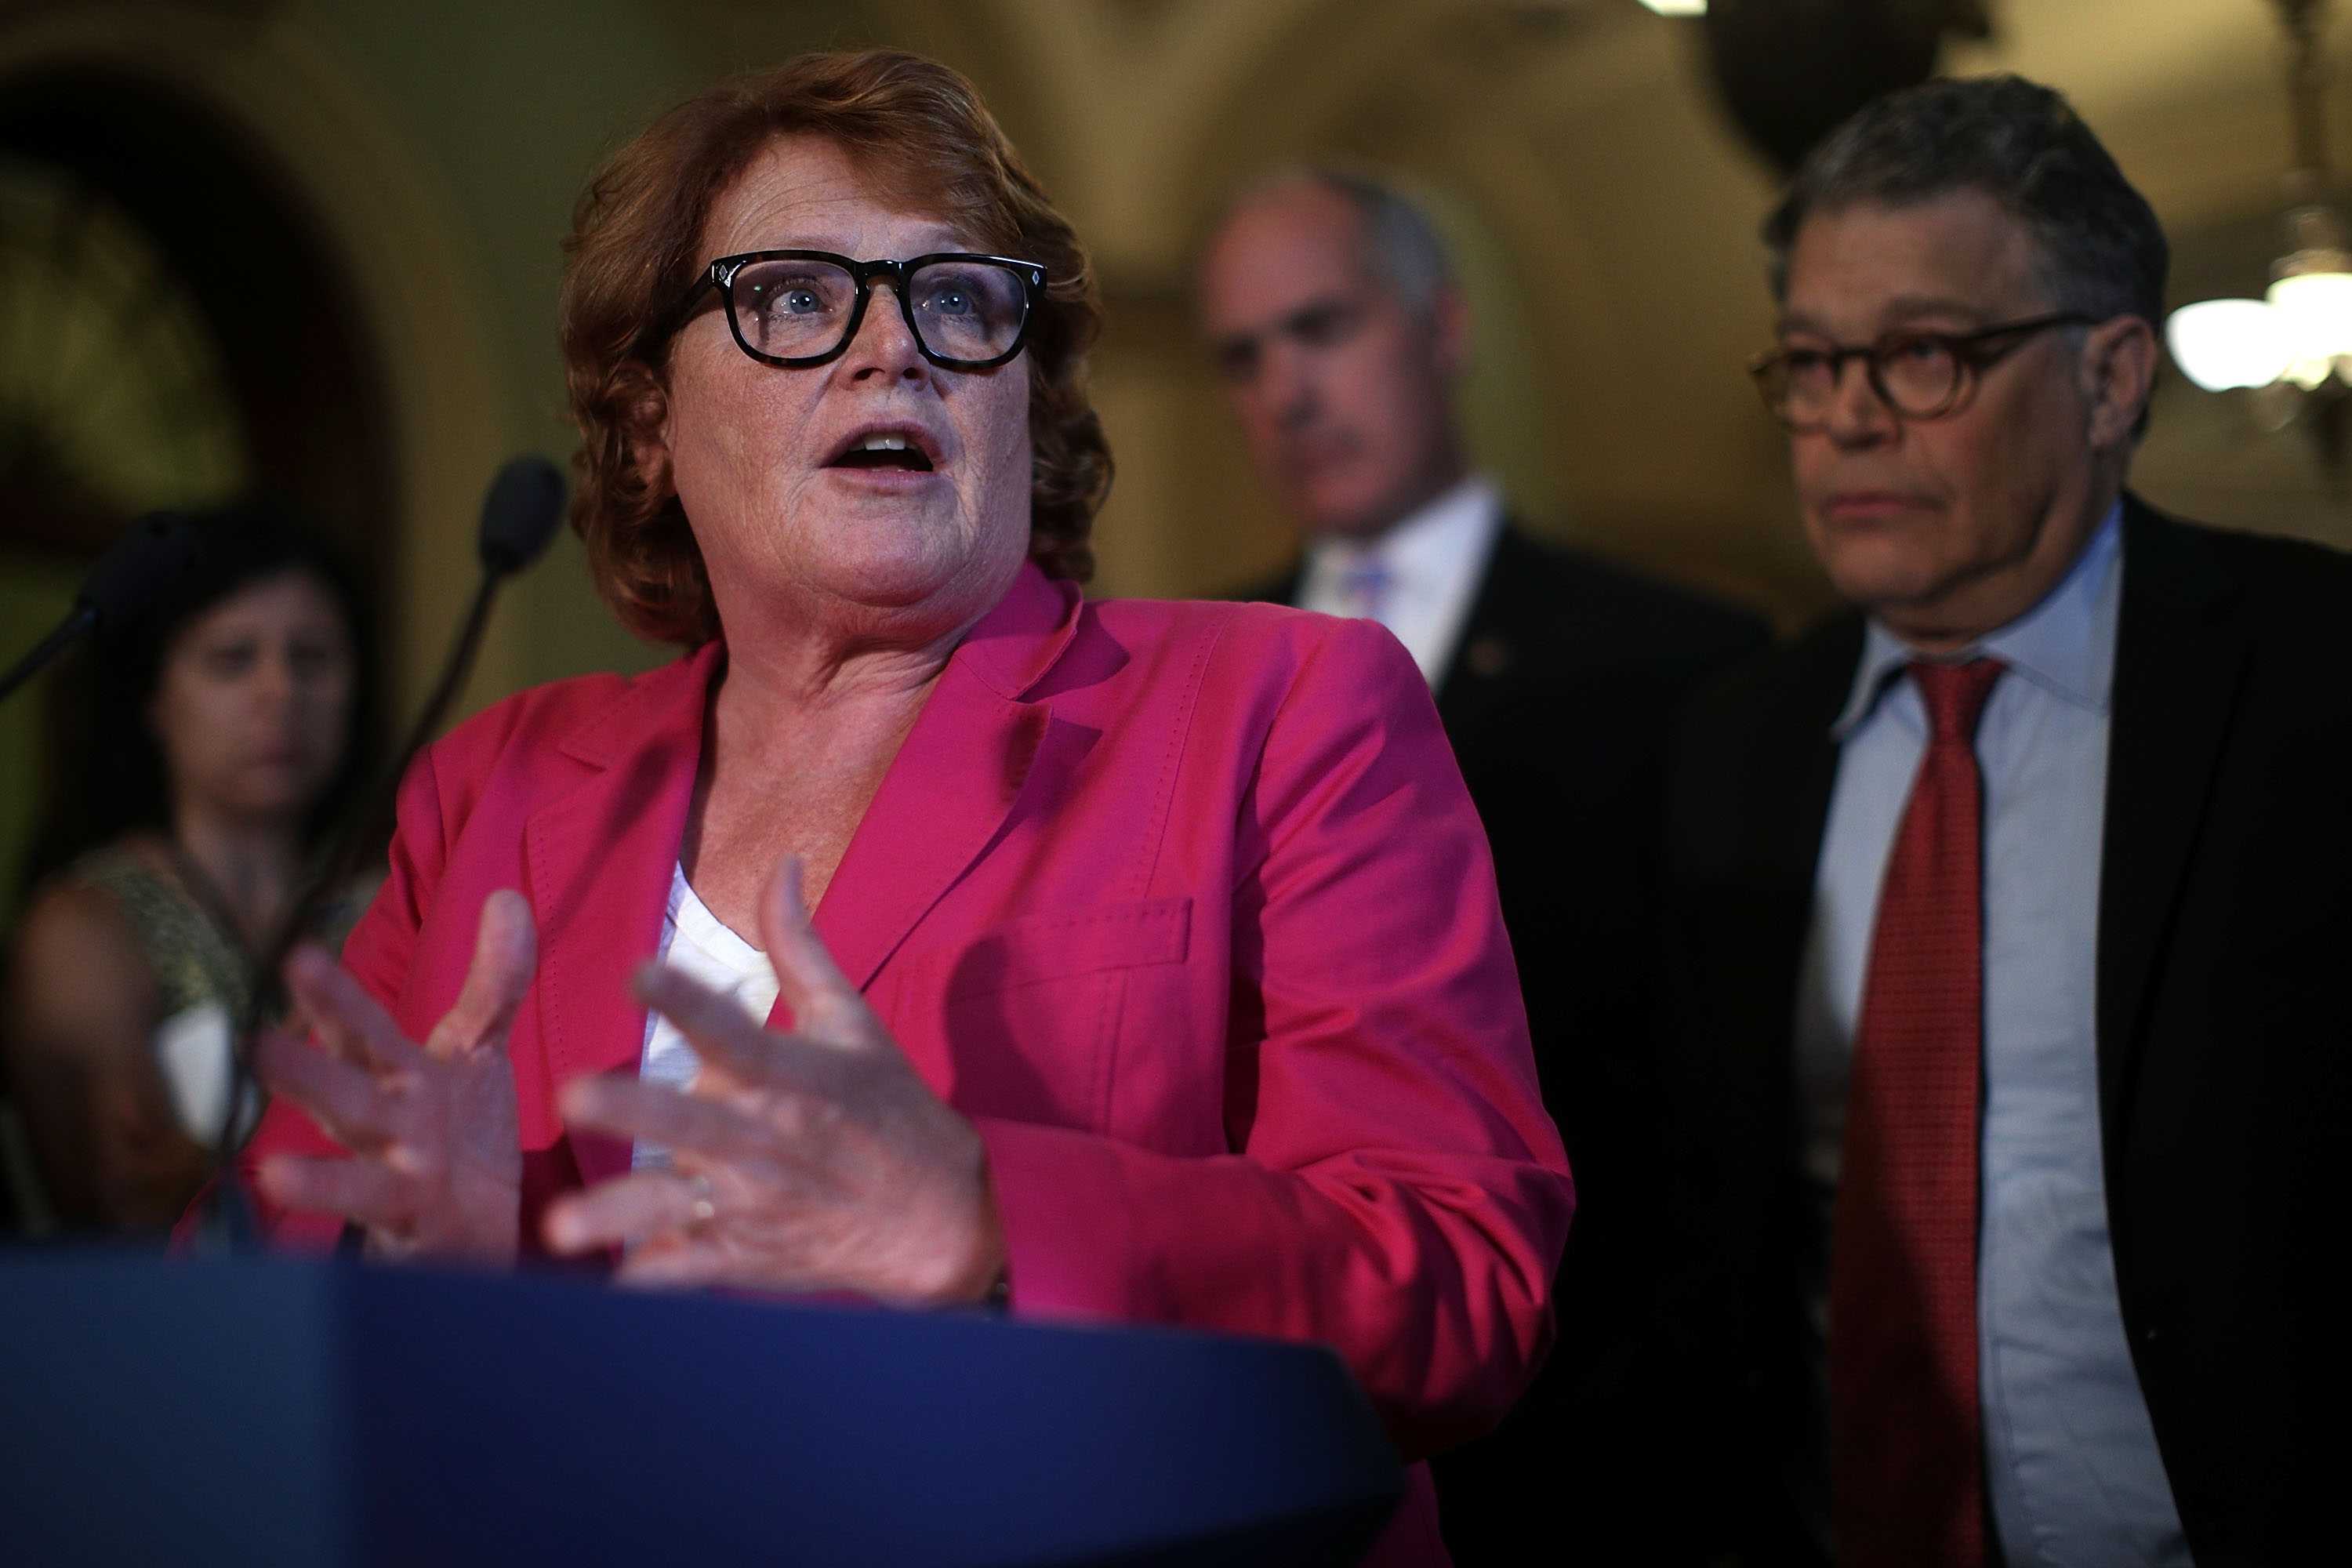 WASHINGTON, DC - JULY 11: U.S. Sen. Heidi Heitkamp (D-ND) (L) speaks as Sen. Al Franken (D-MN) (R) listens during a news briefing after the weekly Senate Democratic Policy Luncheon July 11, 2017 at the Capitol in Washington, DC. Sen. Schumer discussed various topics including Senate's delaying its recess to the third week of August. (Photo by Alex Wong/Getty Images)